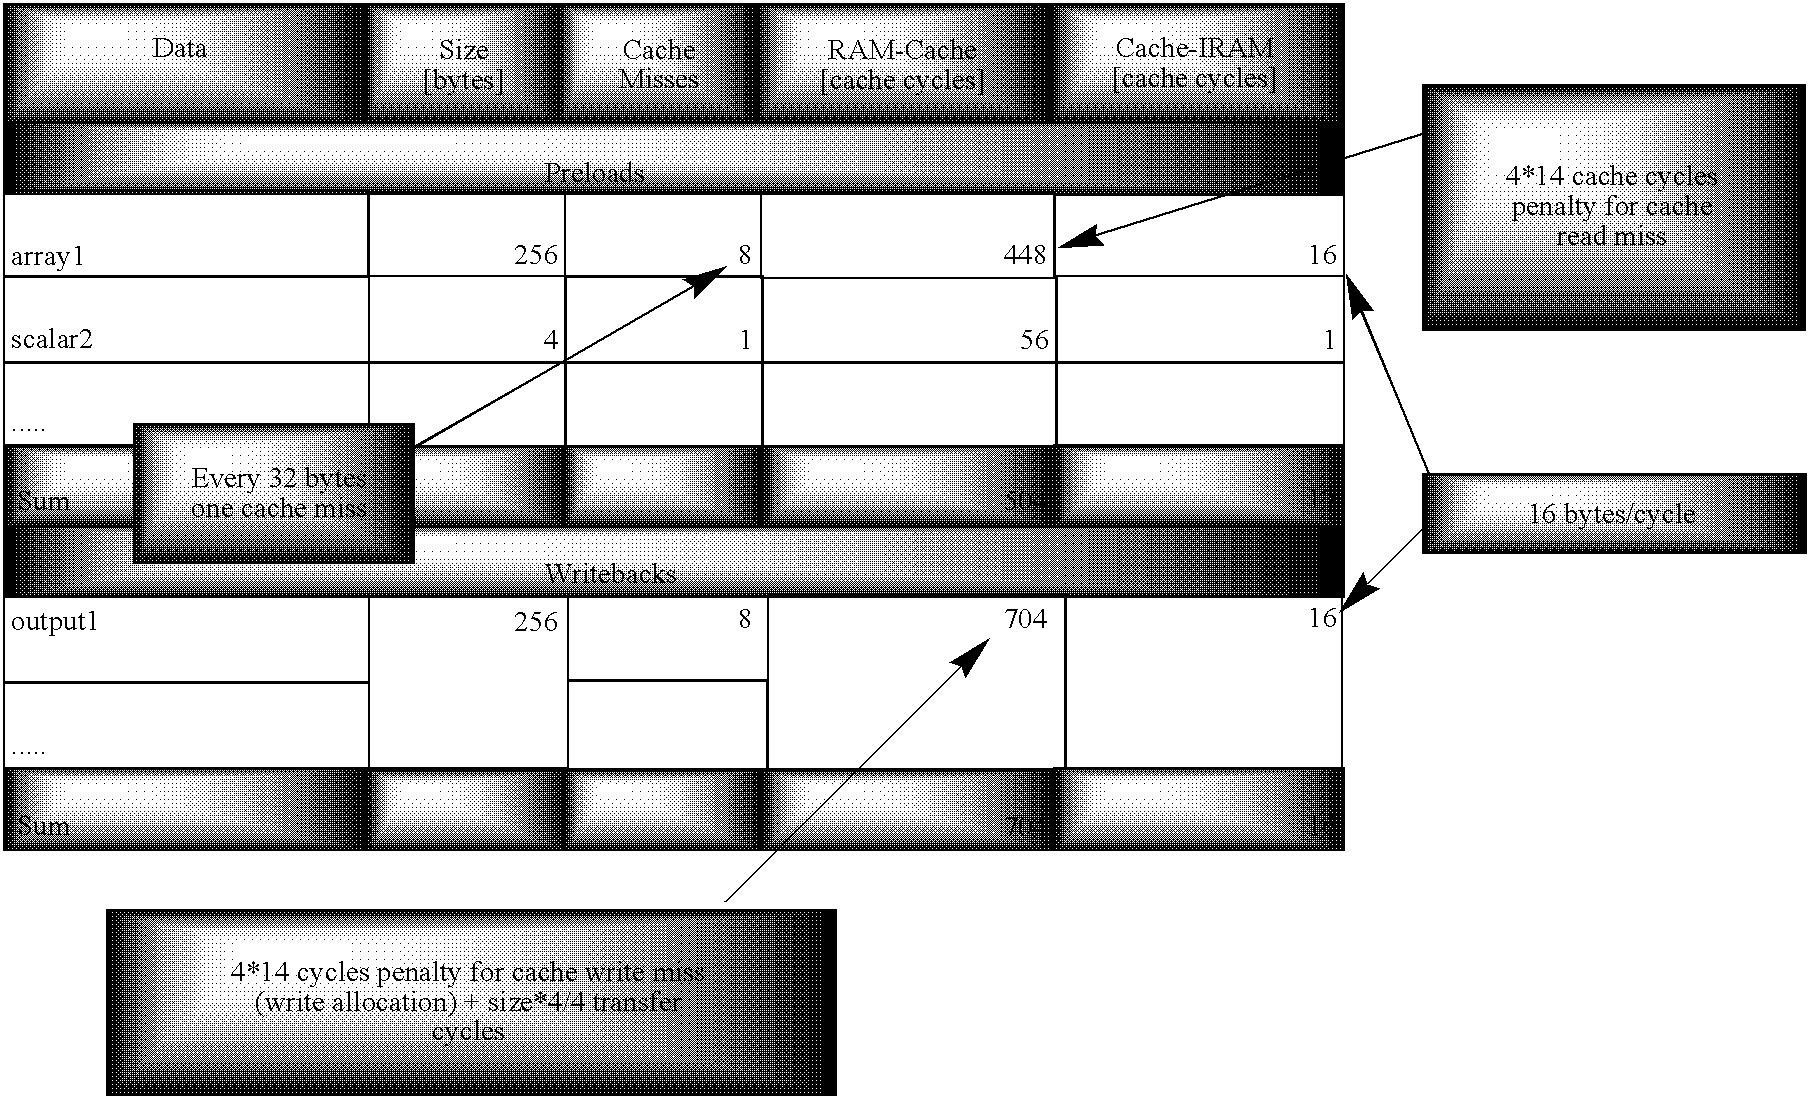 US20070083730A1 - Data processing device and method - Google